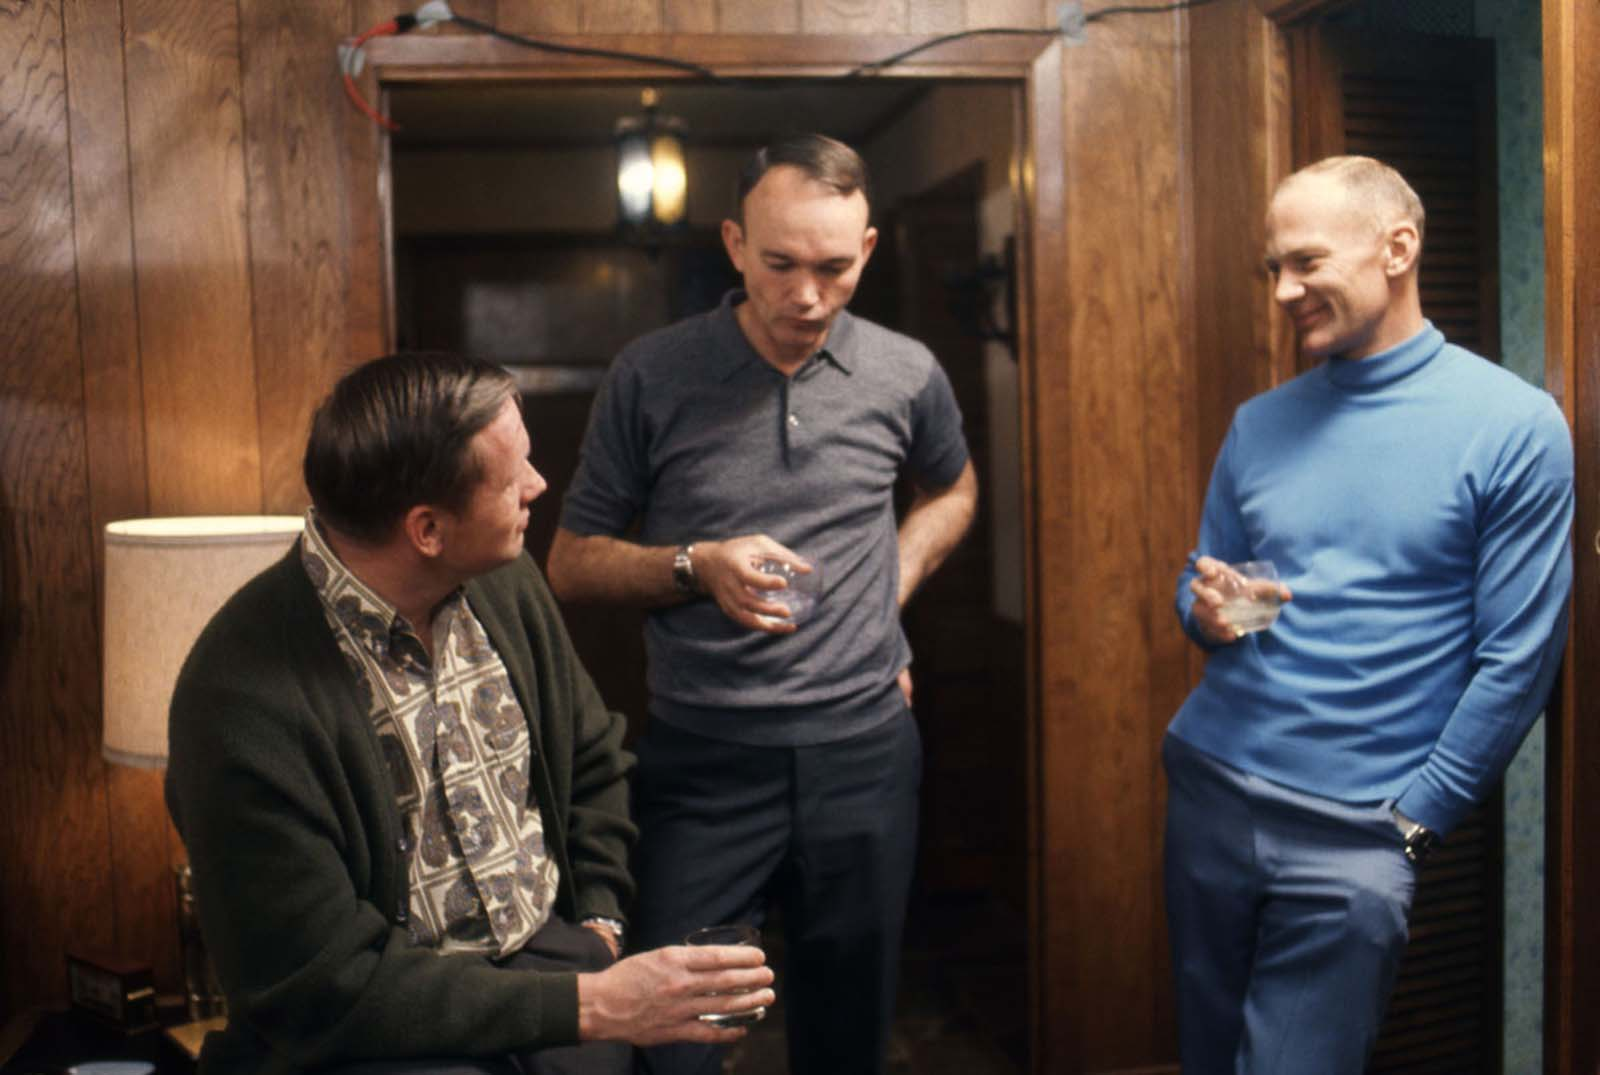 From left: The astronauts Neil Armstrong, Michael Collins, and Buzz Aldrin talk over drinks in a wood-paneled room in Houston, Texas, in March 1969.